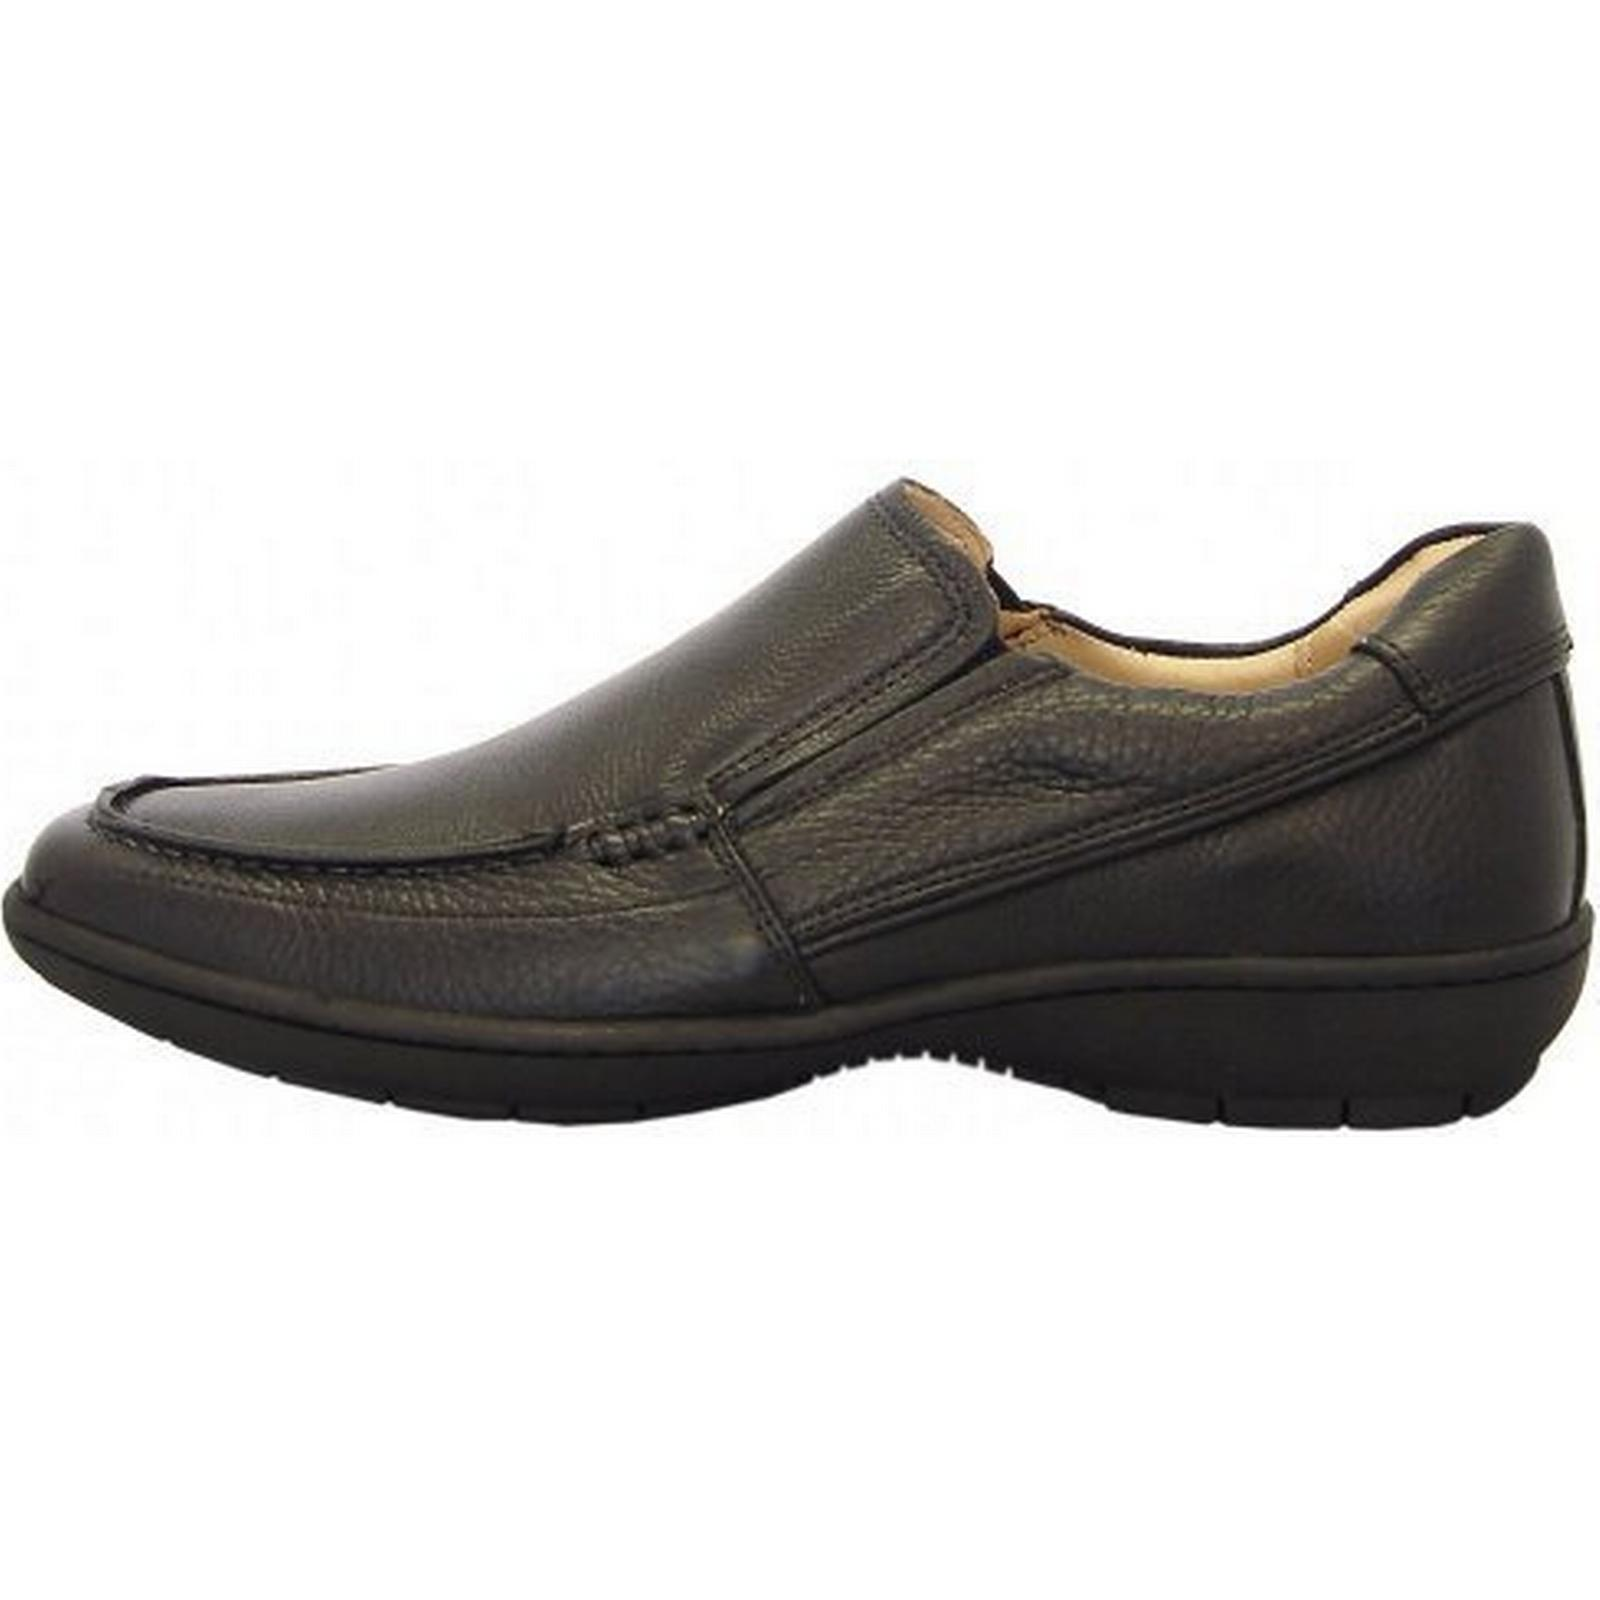 Anatomic&Co Sobral smart casual mens slip on shoes shoes on in black Size: 45, 7a698d